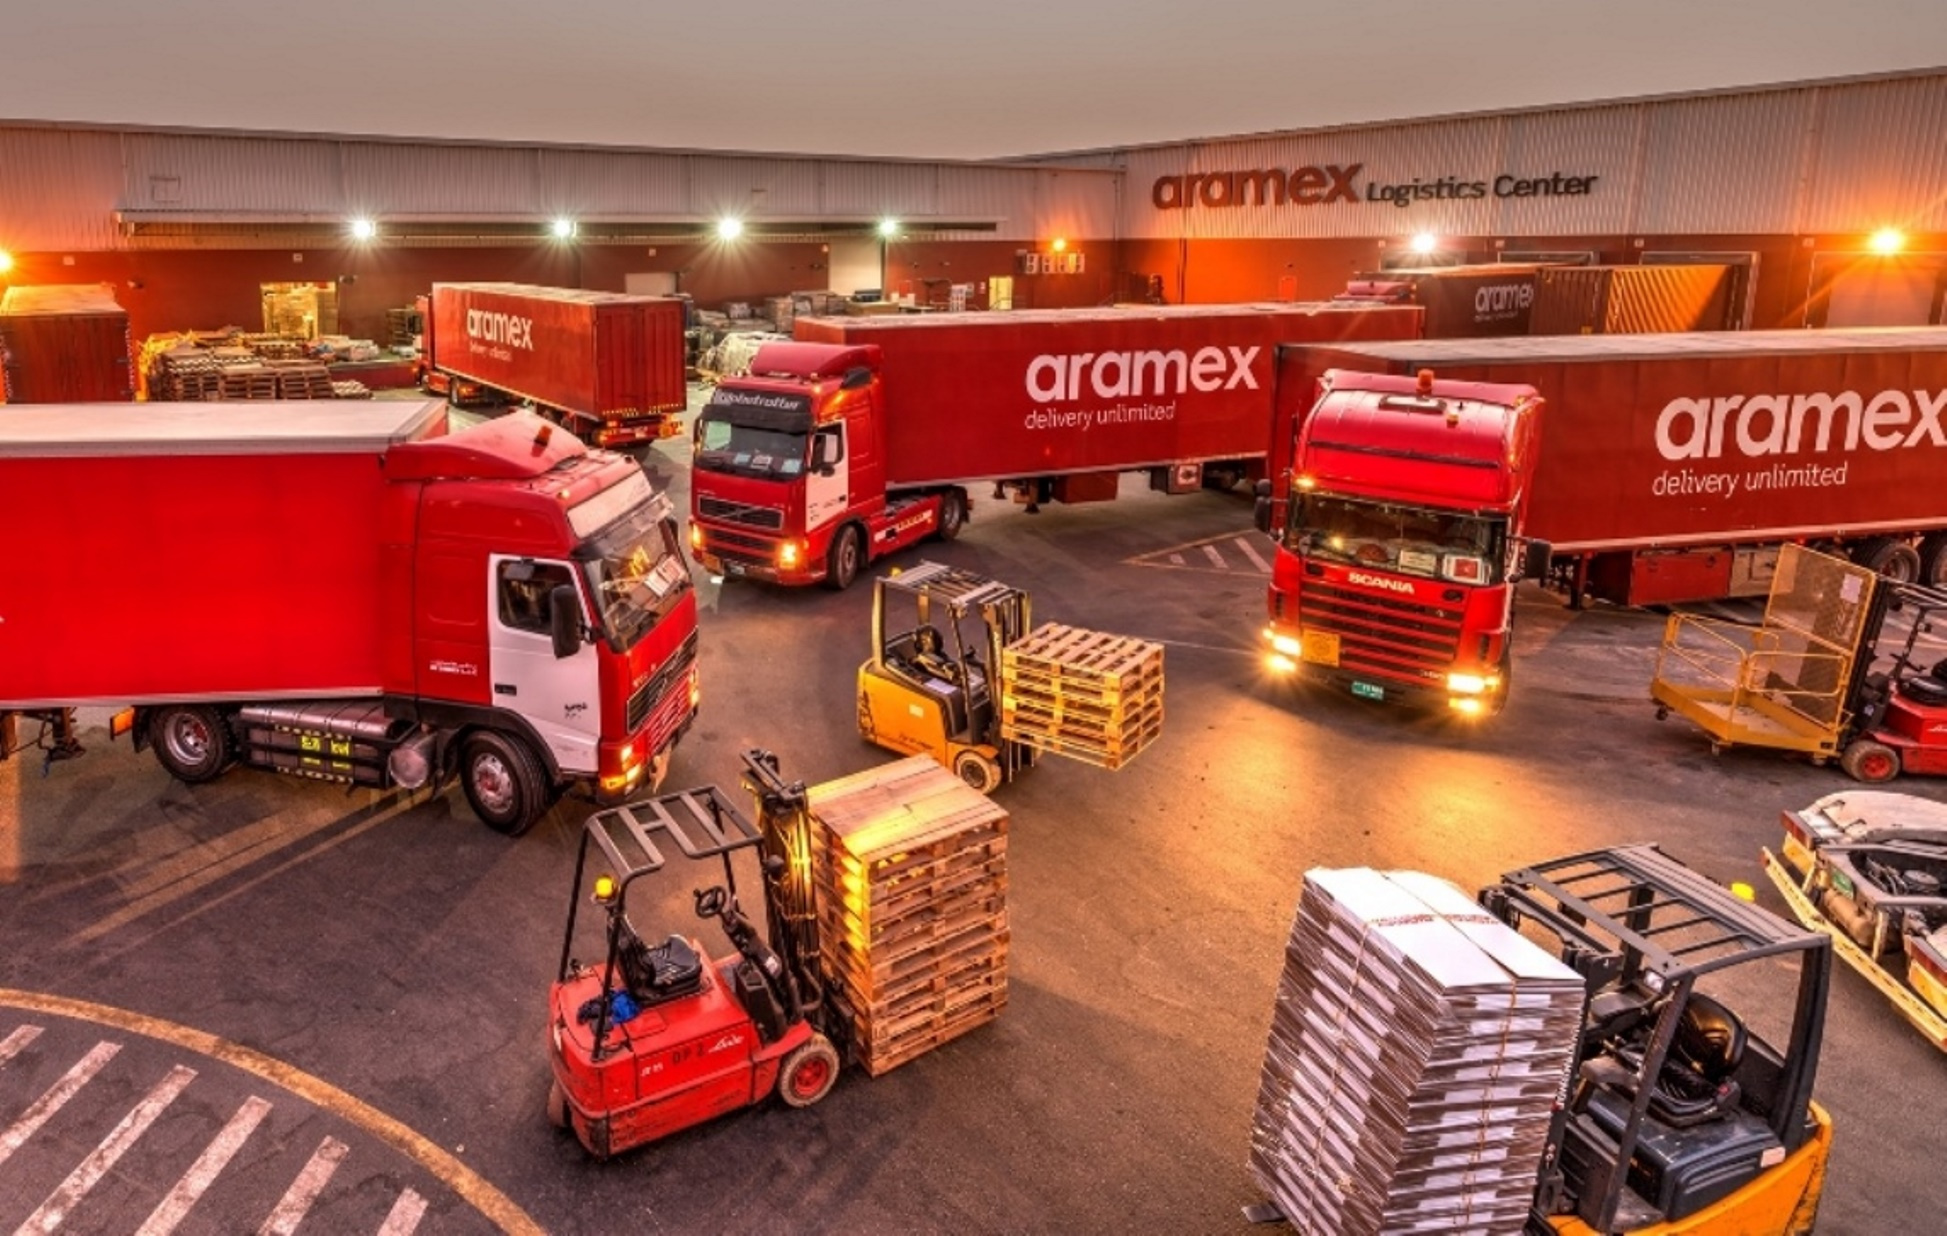 Aramex buys New Zealand-based Fastway Couriers